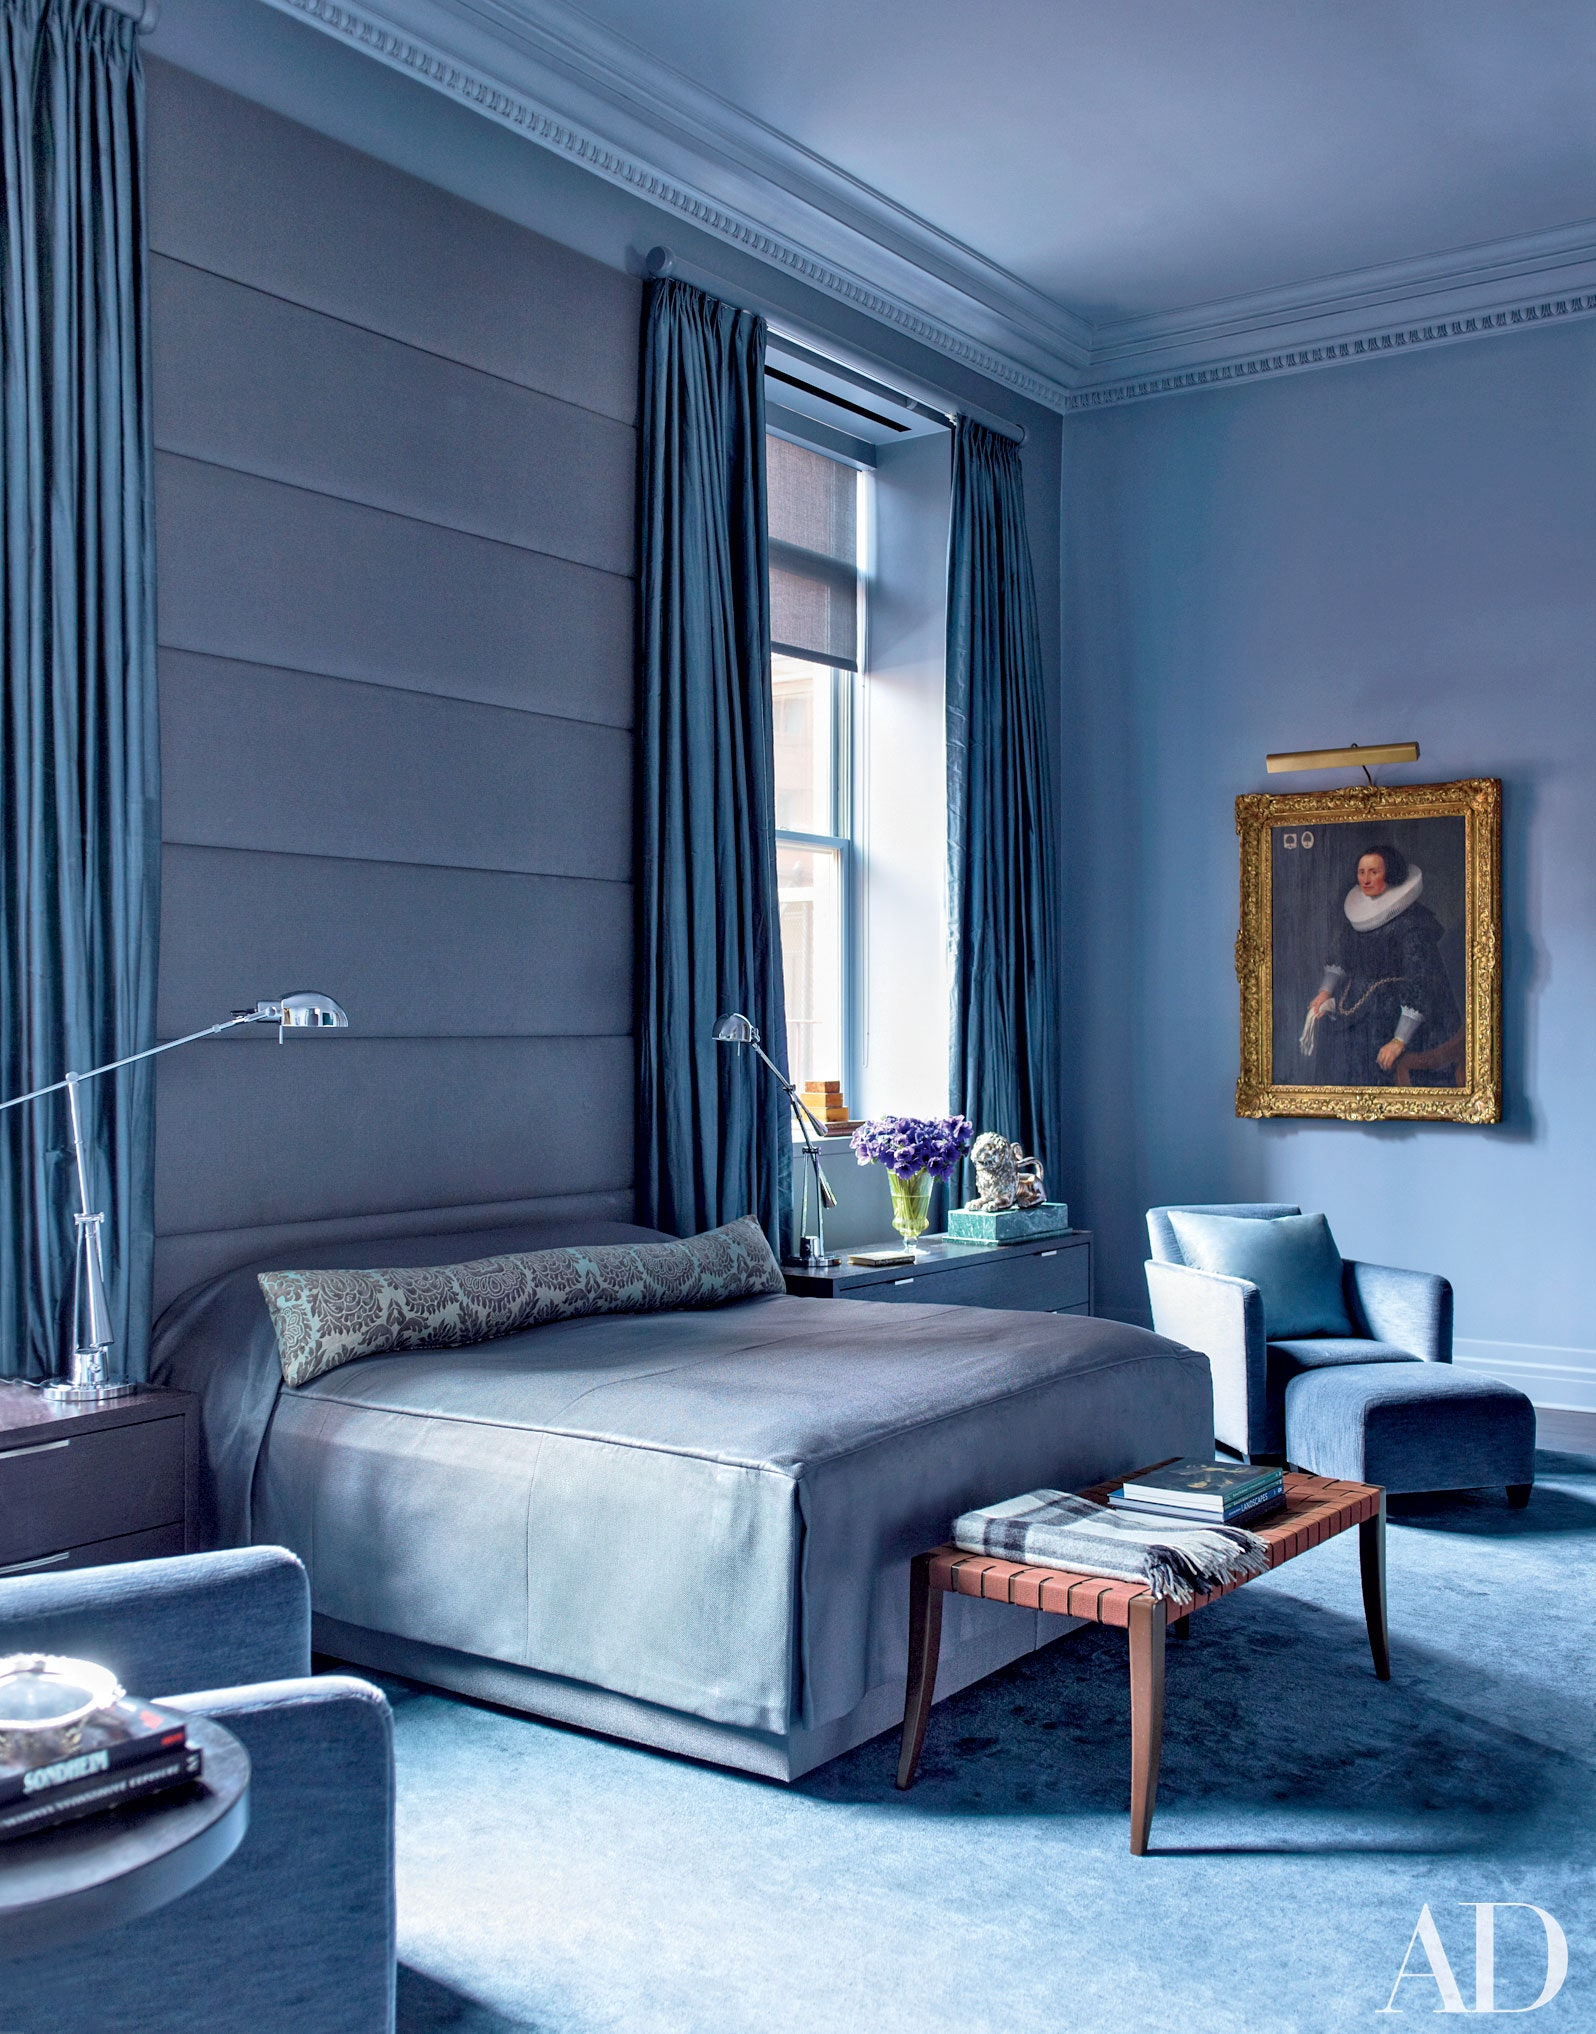 12 Stunning Bedroom Paint Ideas for Your Master Suite ...